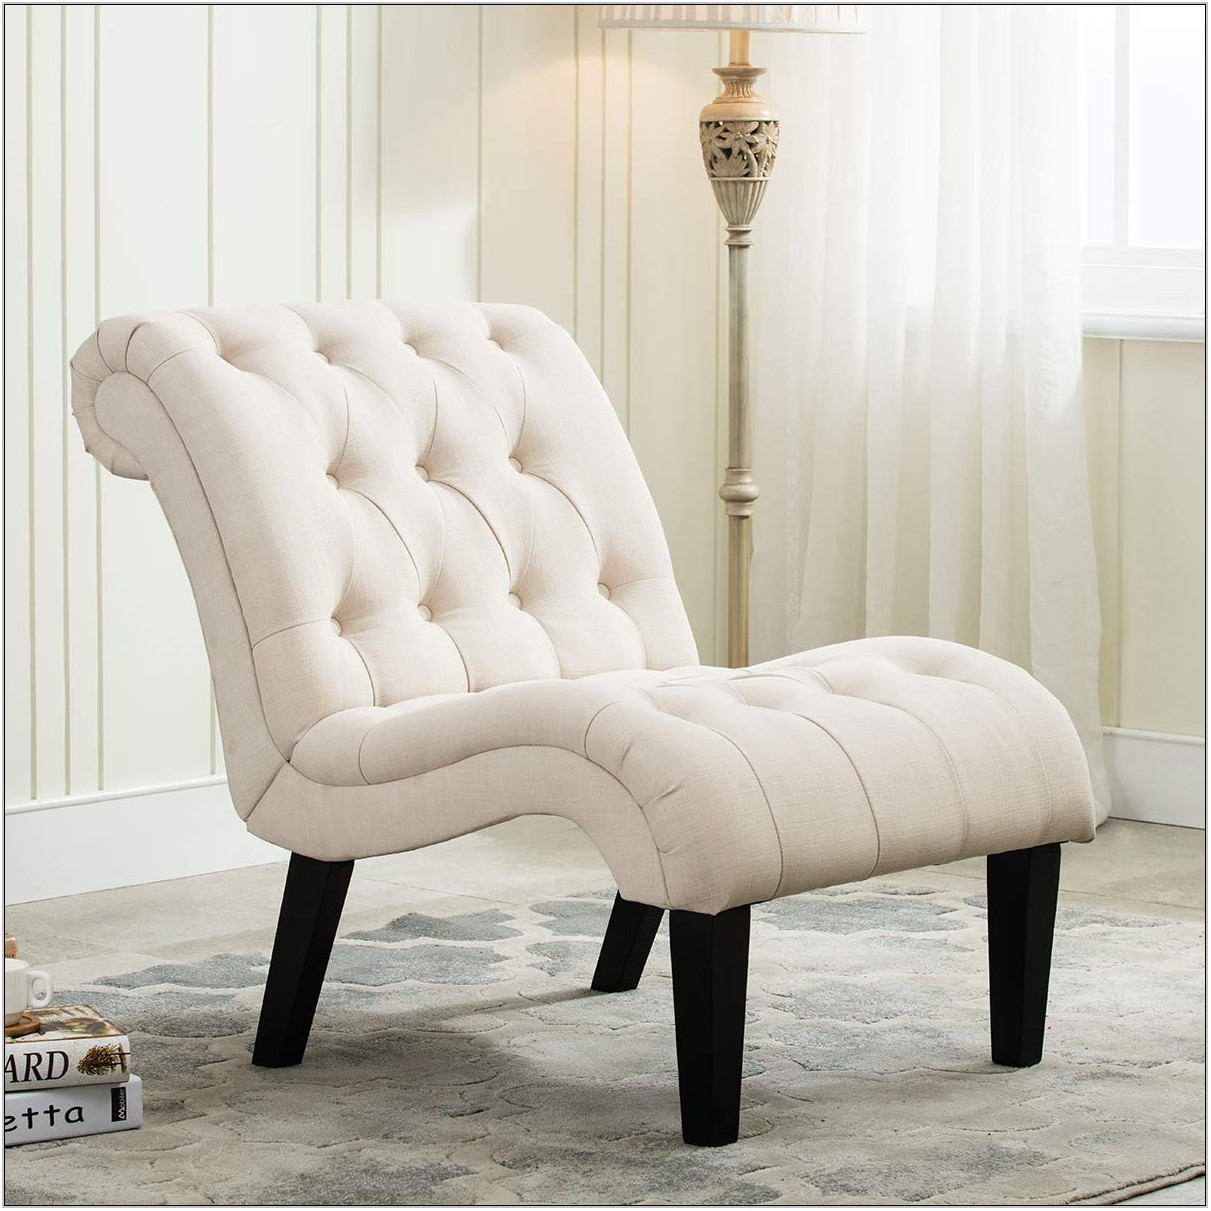 Tufted Living Room Chairs